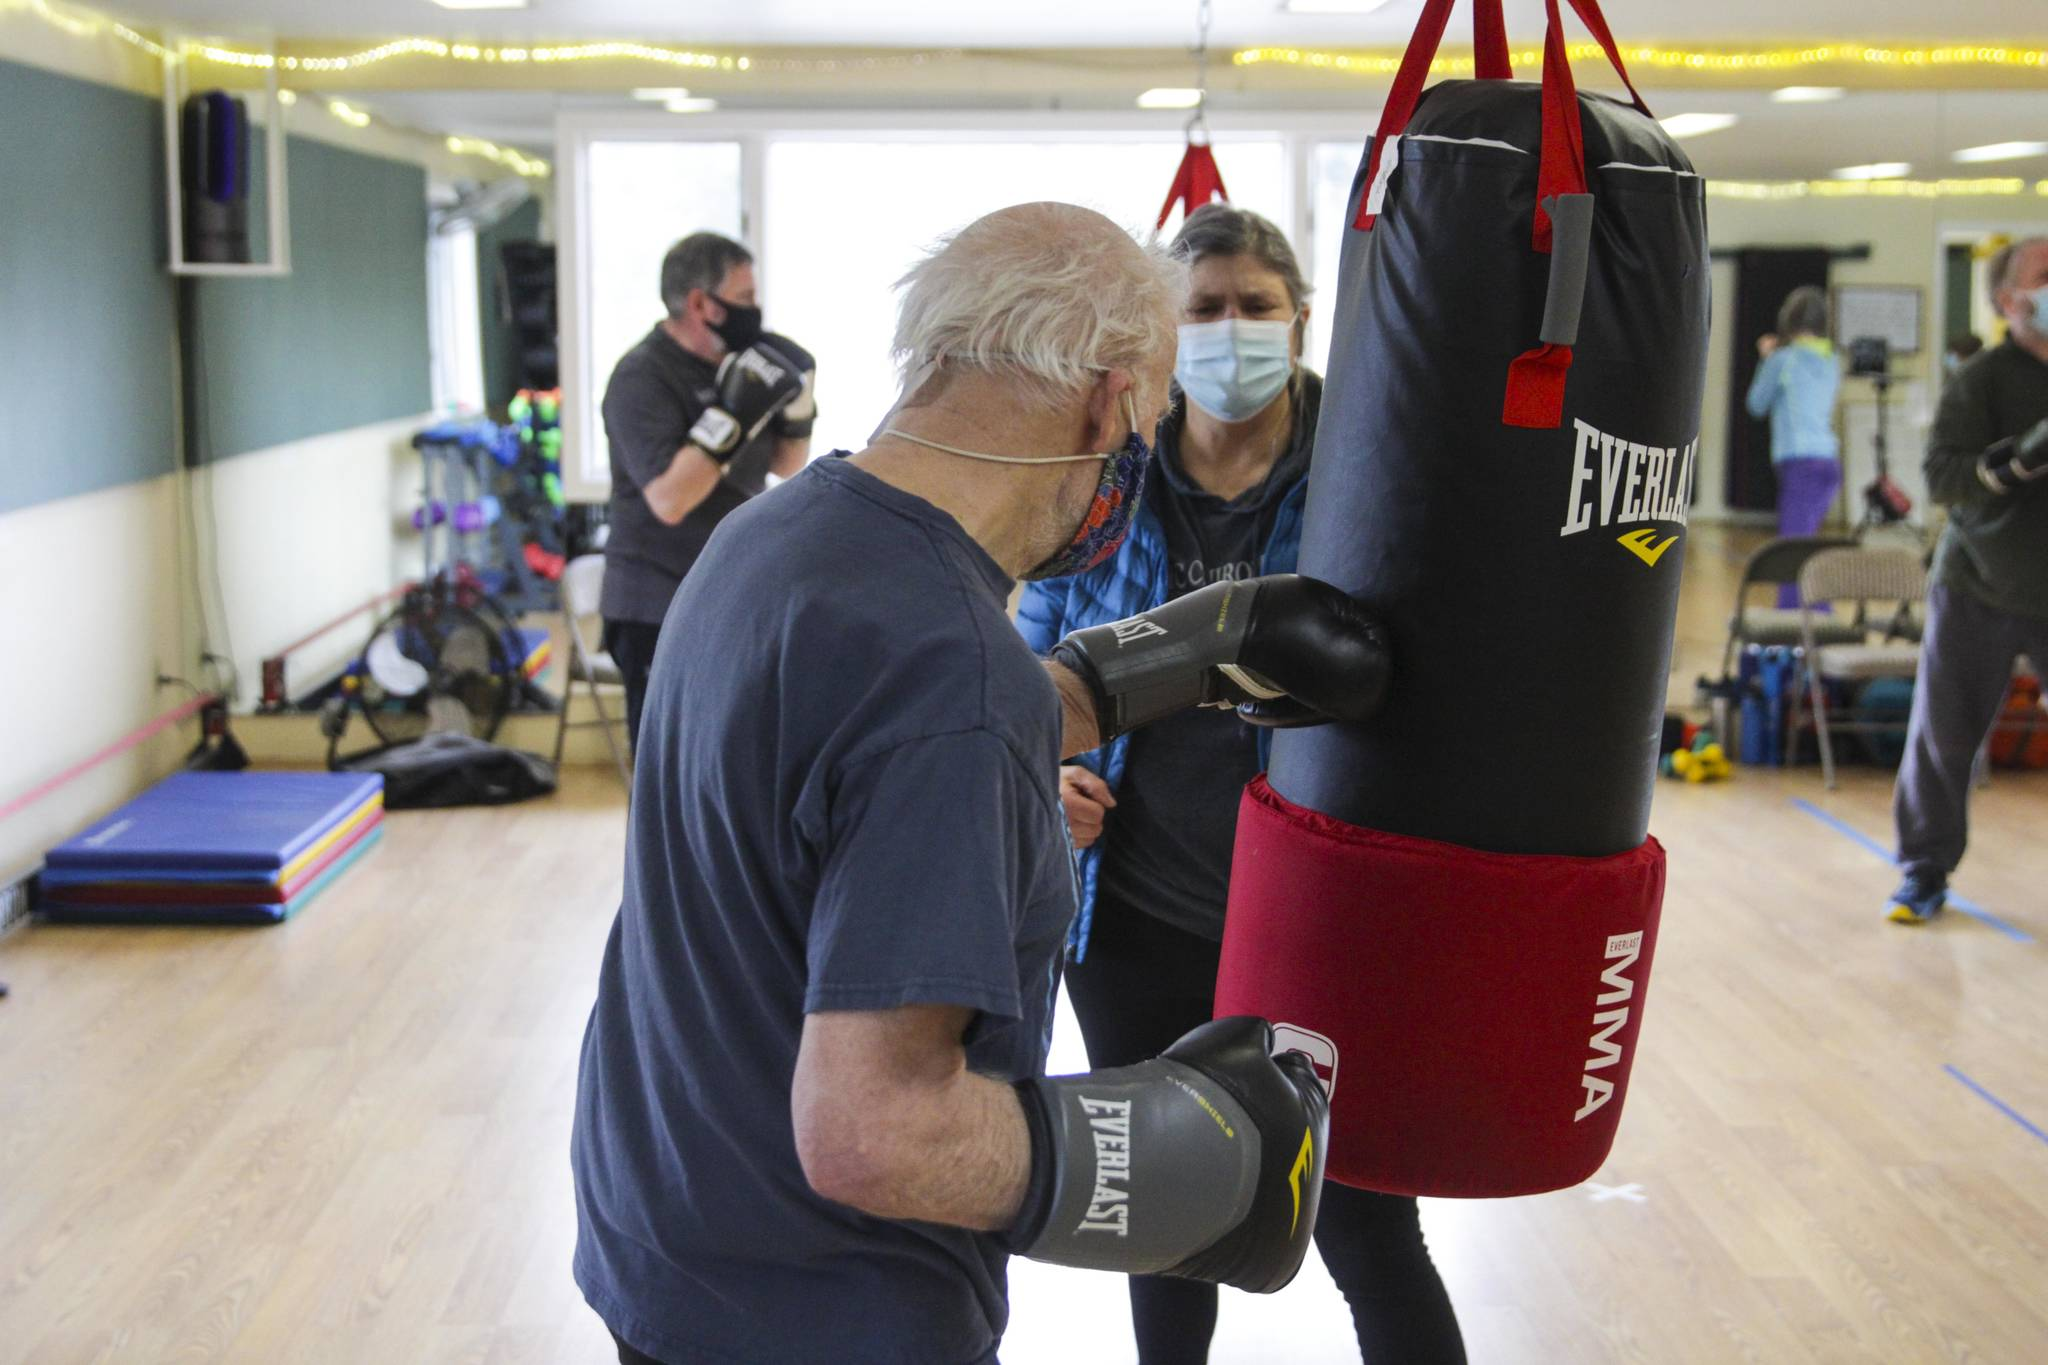 Steve Wolf strikes a punching bag as his wife Bev Ingram holds it during a boxing class designed to help fight back against the symptoms Parkinson's disease through a specific regimen at Pavitt Health and Fitness on March. 2, 2021. (Michael S. Lockett / Juneau Empire)